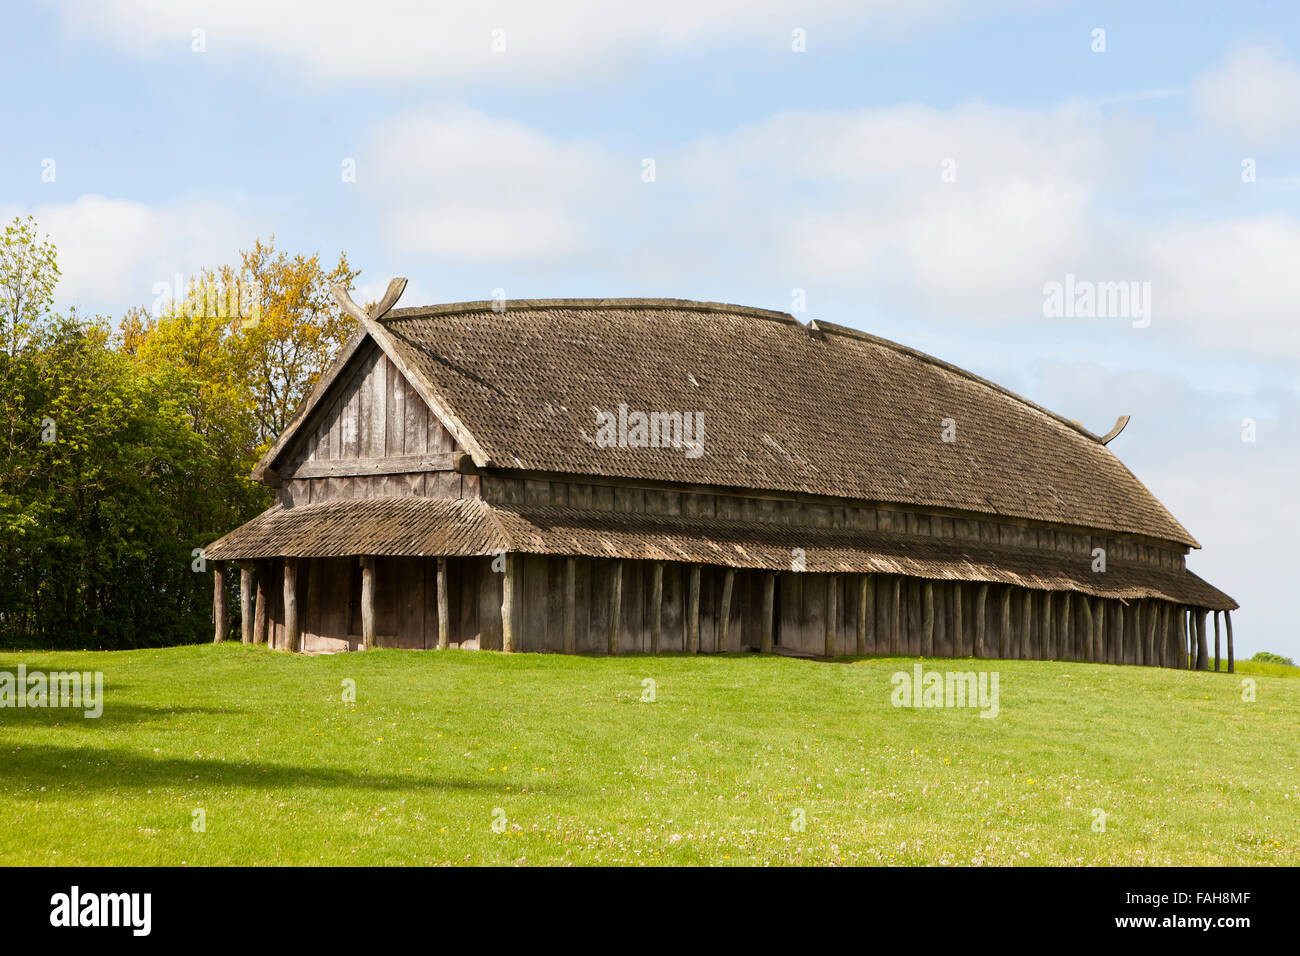 The Reconstructed Viking Longhouse At Trelleborg Slagelse